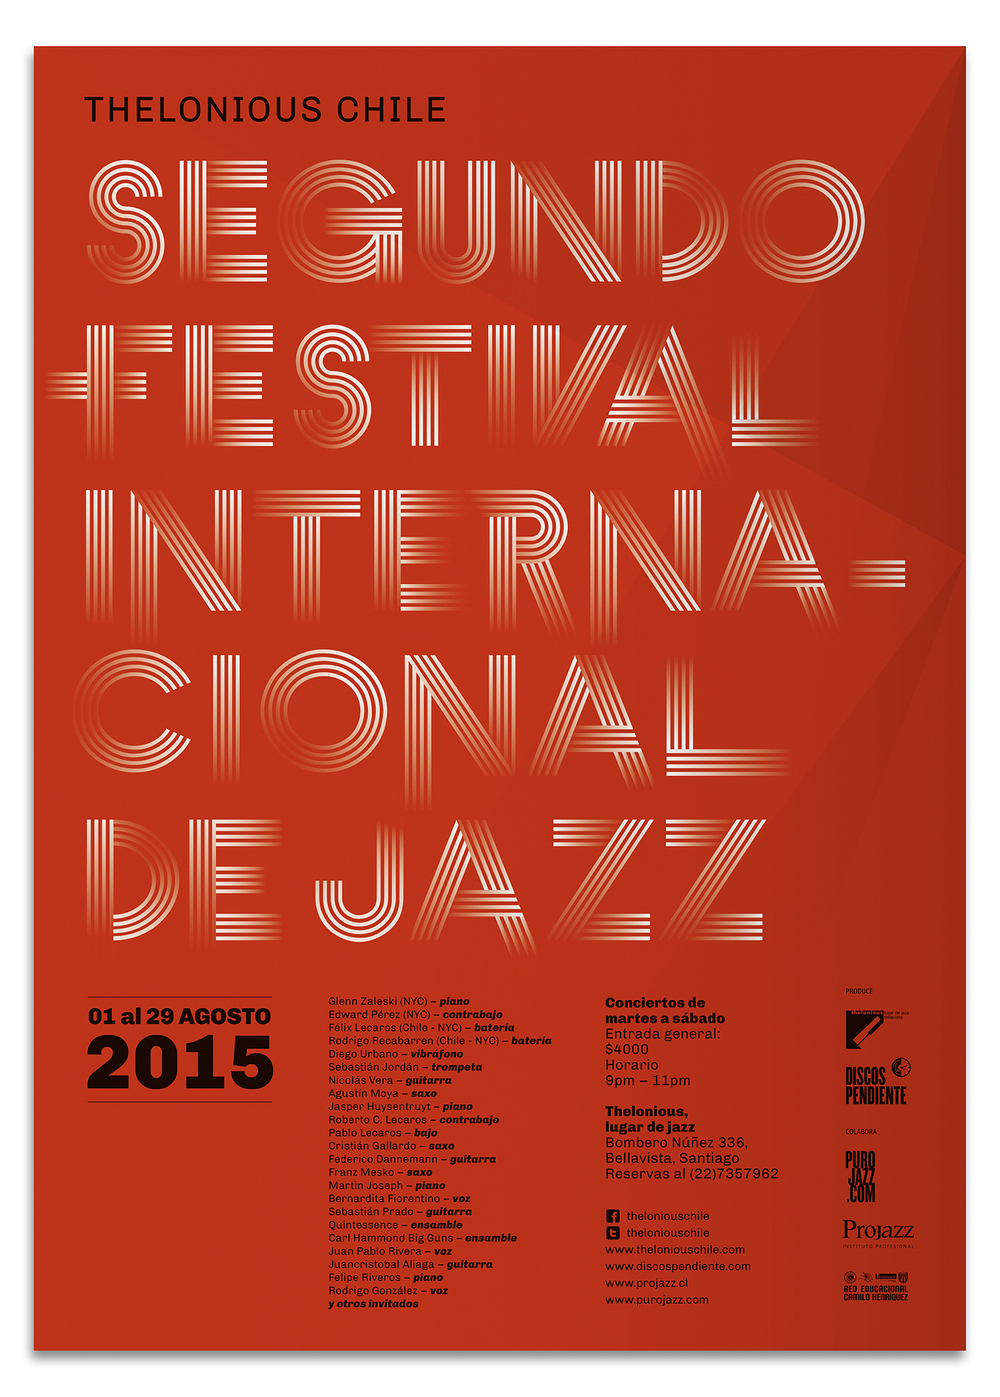 AFICHE THELONIOUS 12 2015.jpg